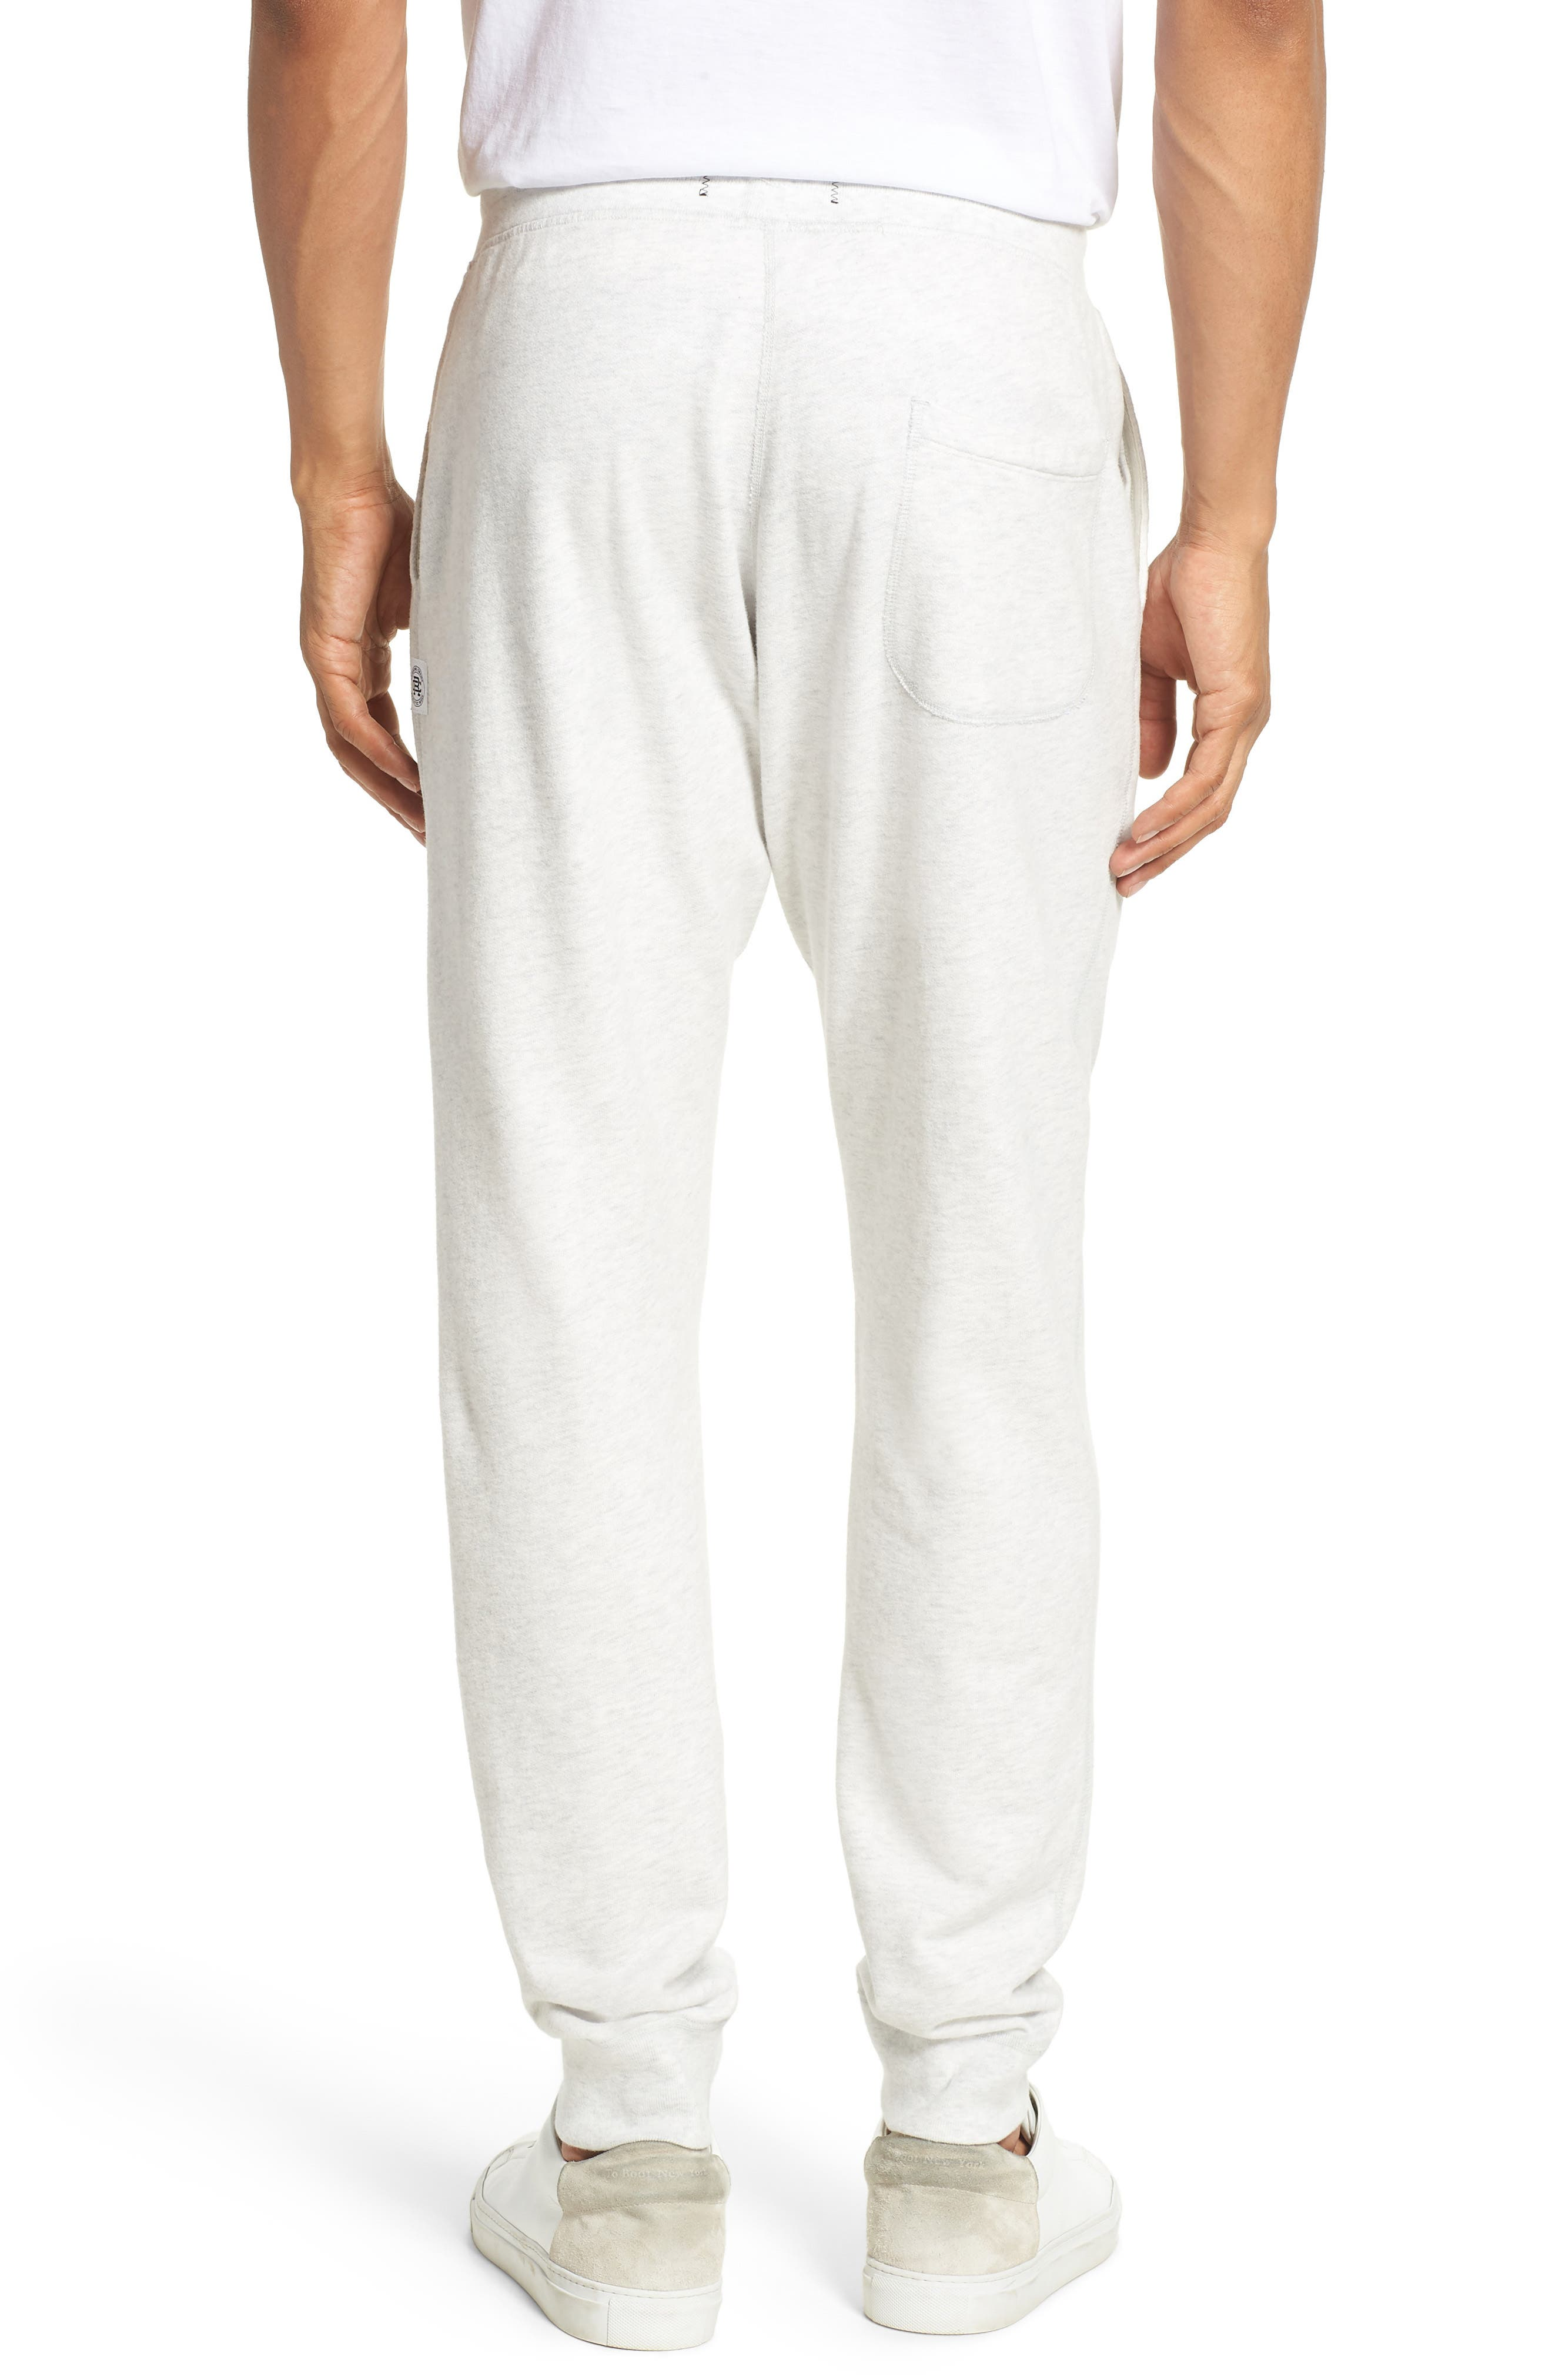 Slim Fit Sweatpants,                             Alternate thumbnail 2, color,                             Heather Ash